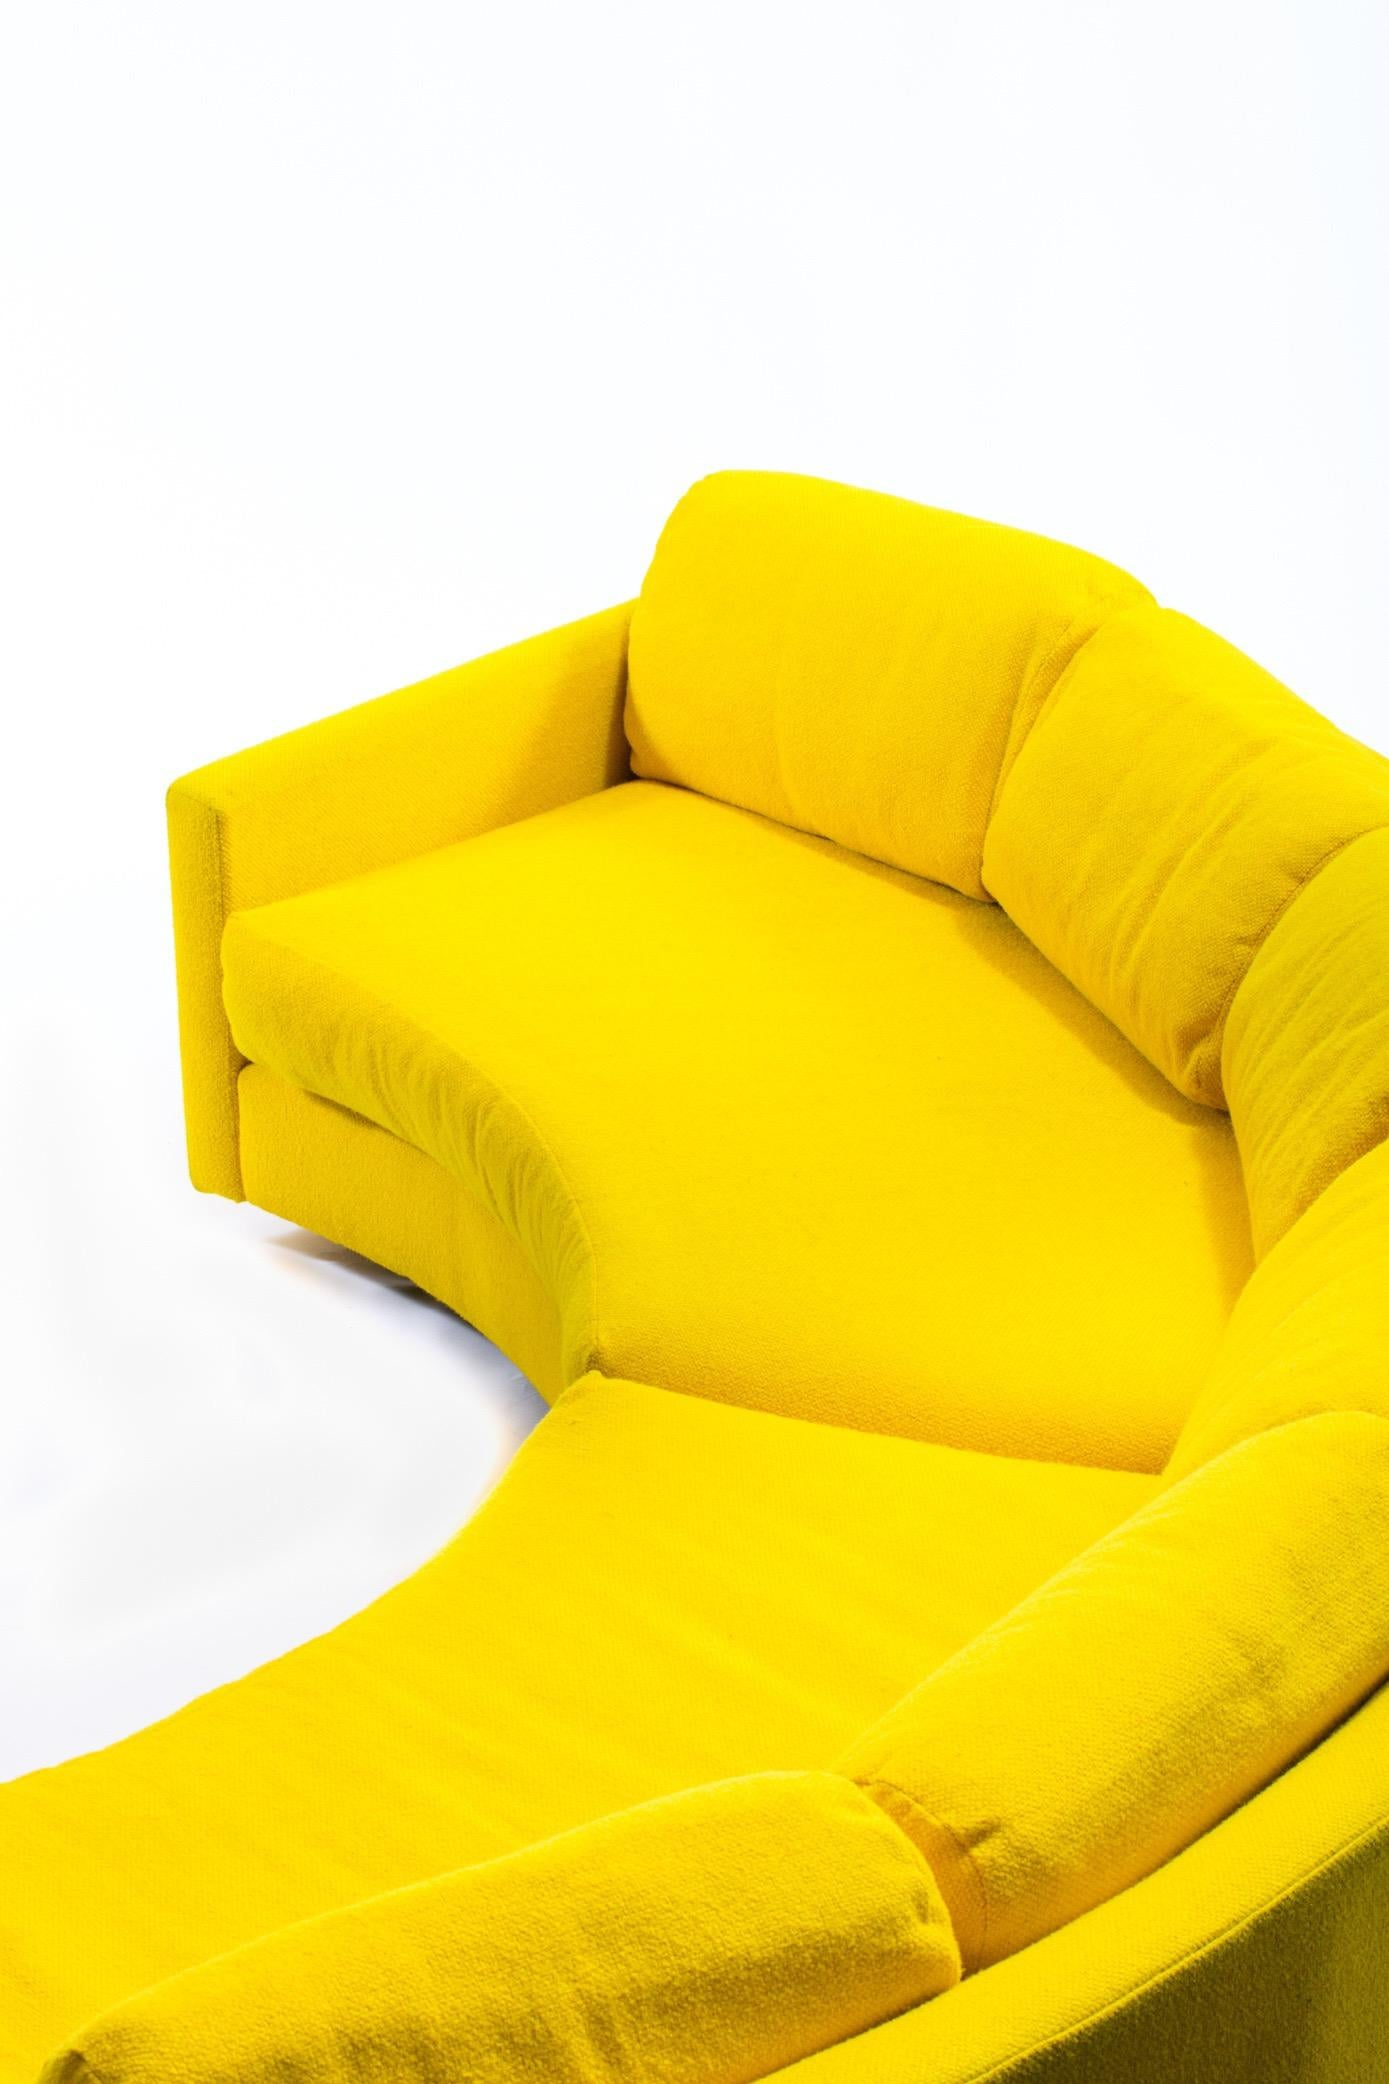 adrian pearsall pit style yellow semi circular sofa 3 piece sectional